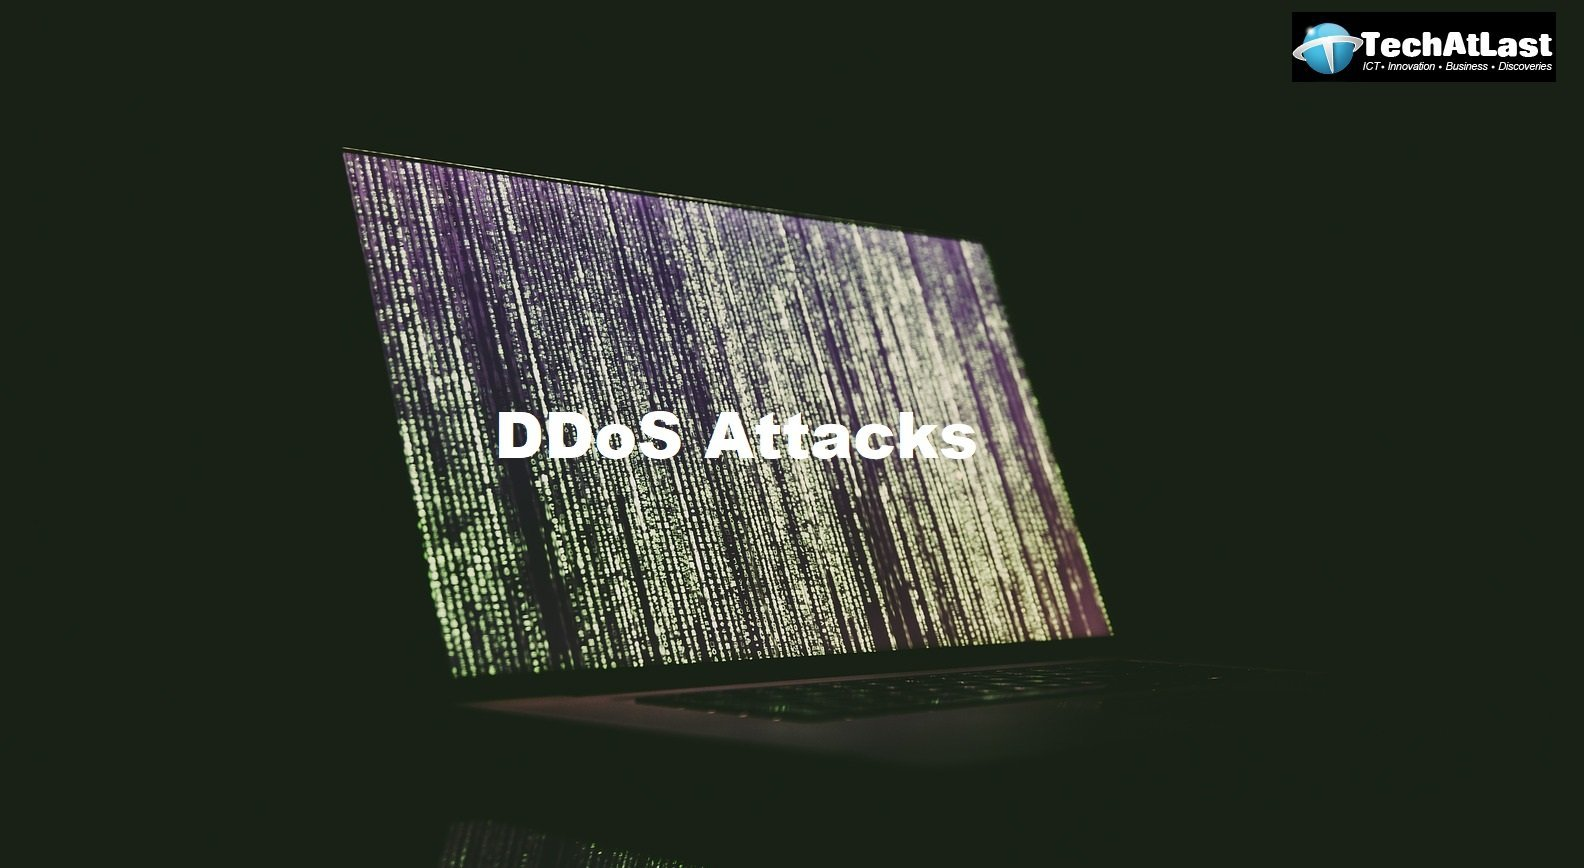 Are DDoS attacks the biggest nemesis for online gamers